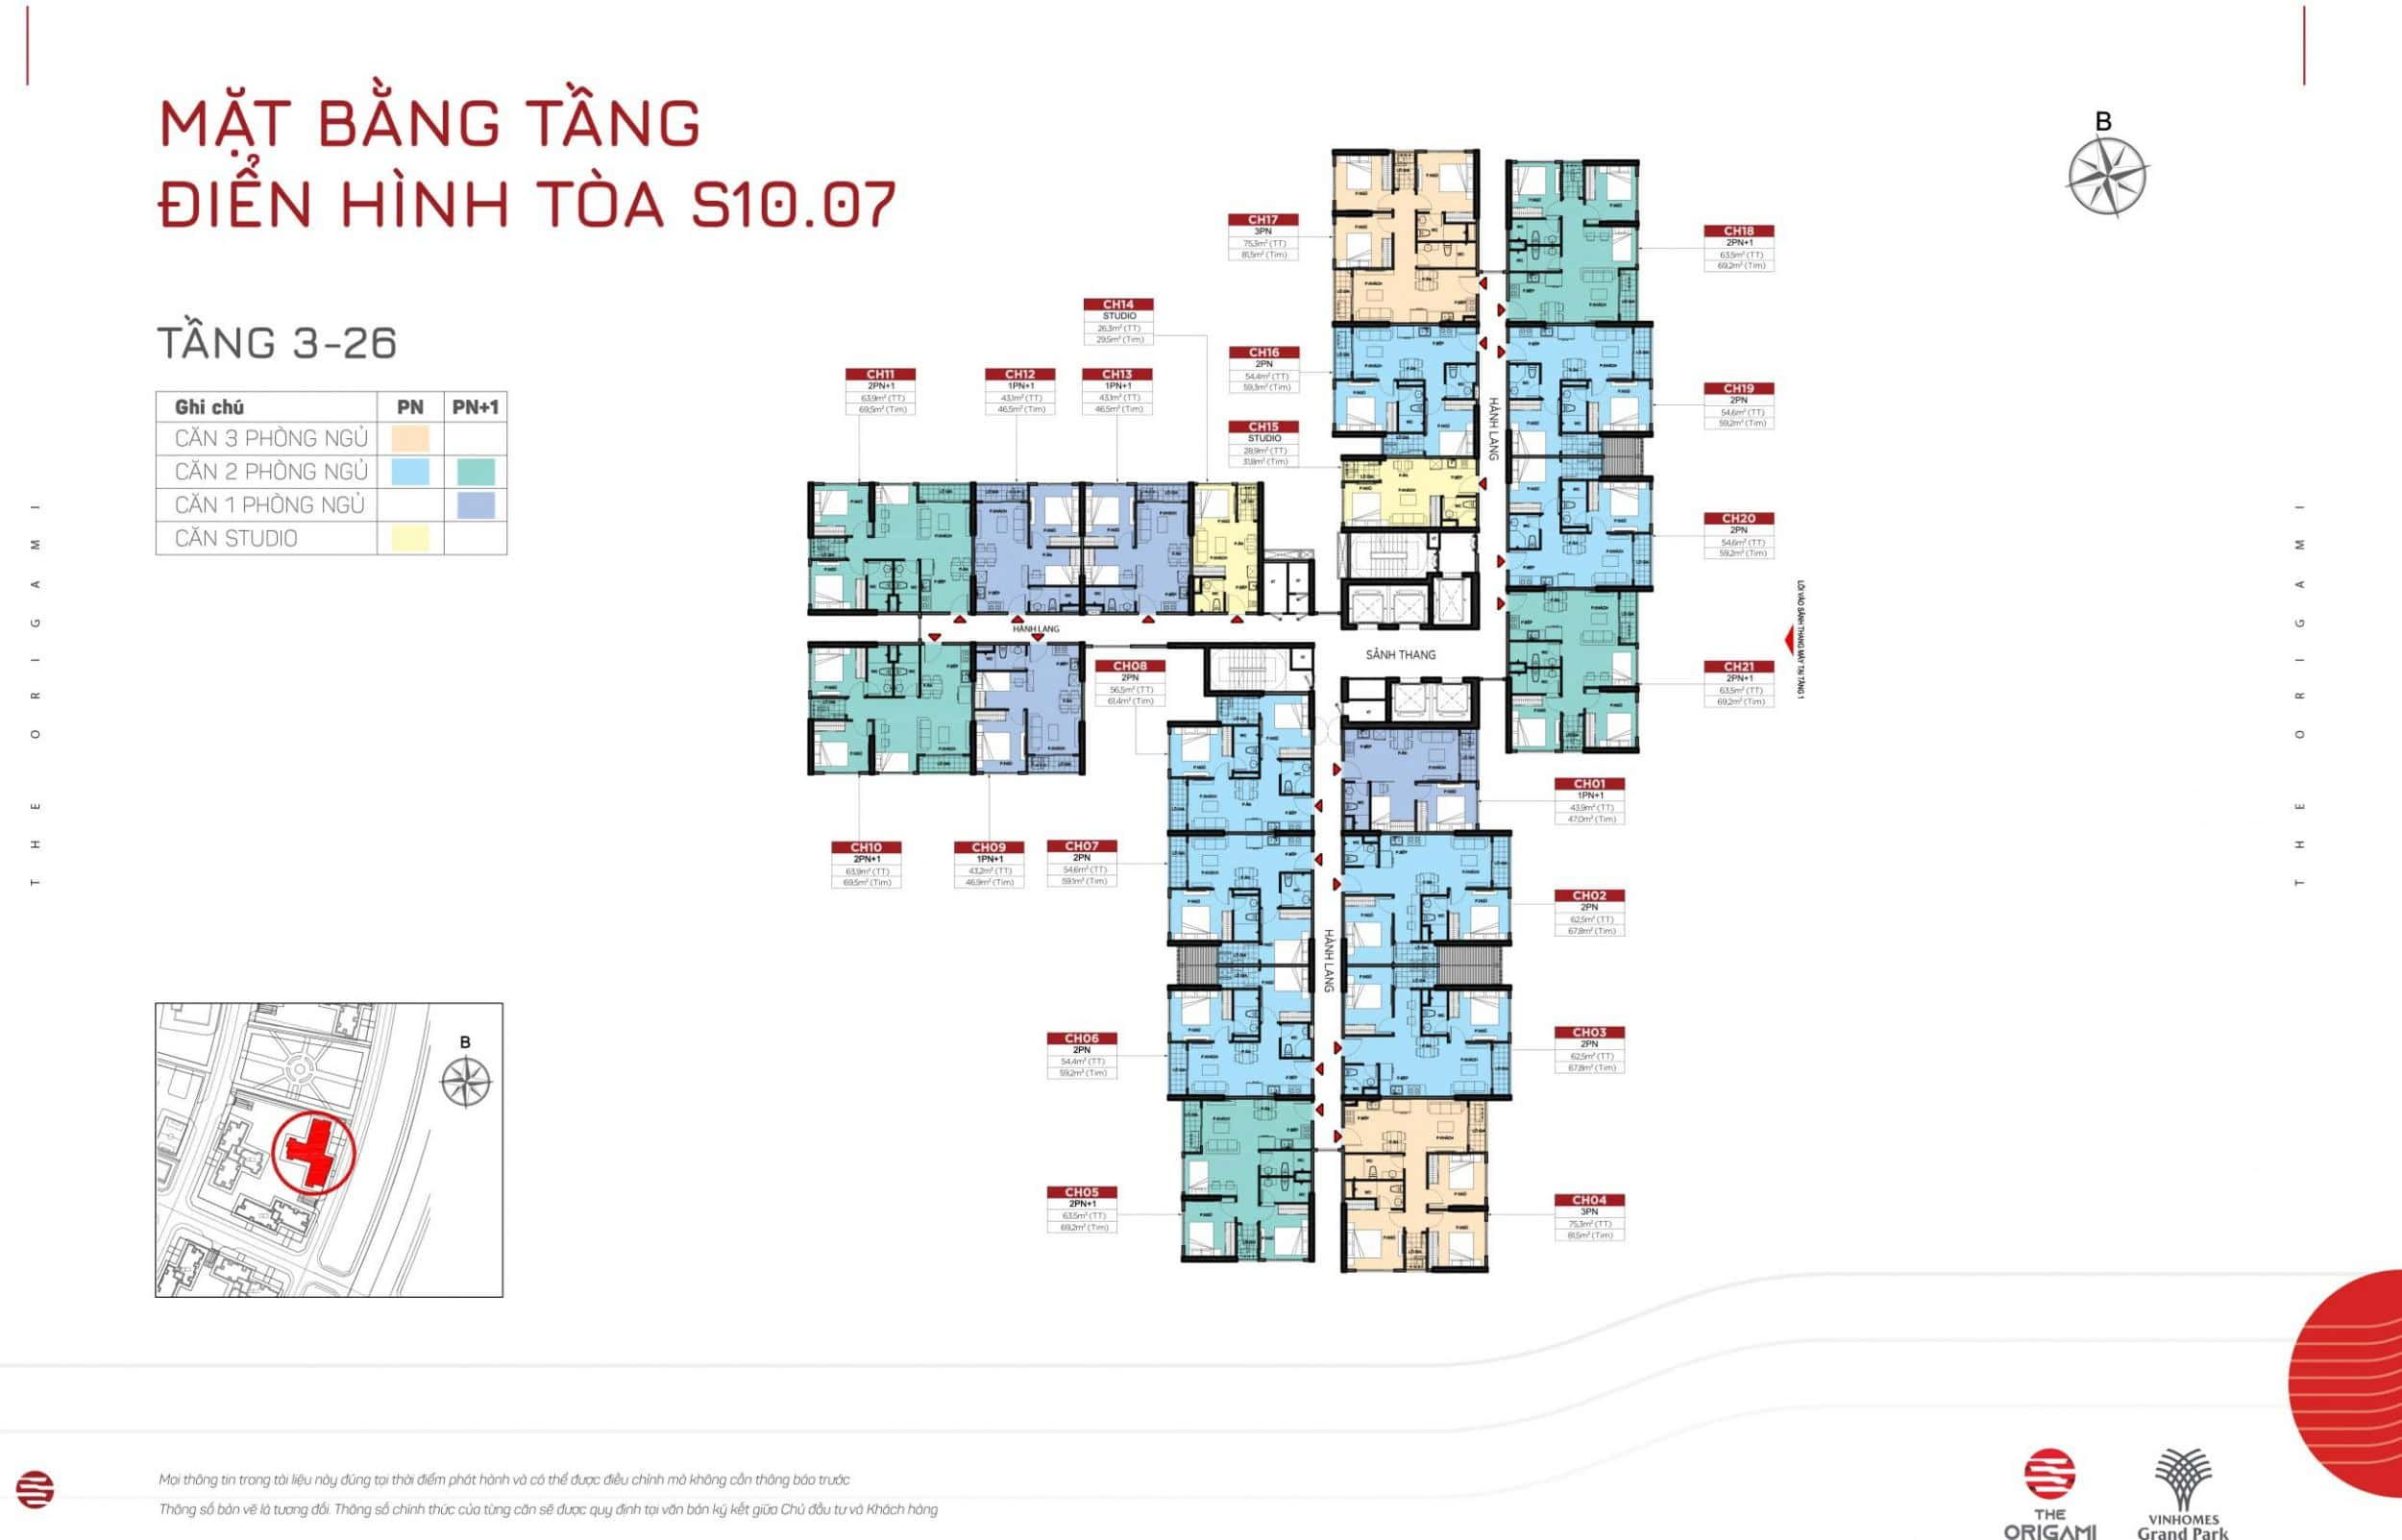 Mặt bằng S10.07 The Origami Vinhomes Grand Park - tầng 3-26